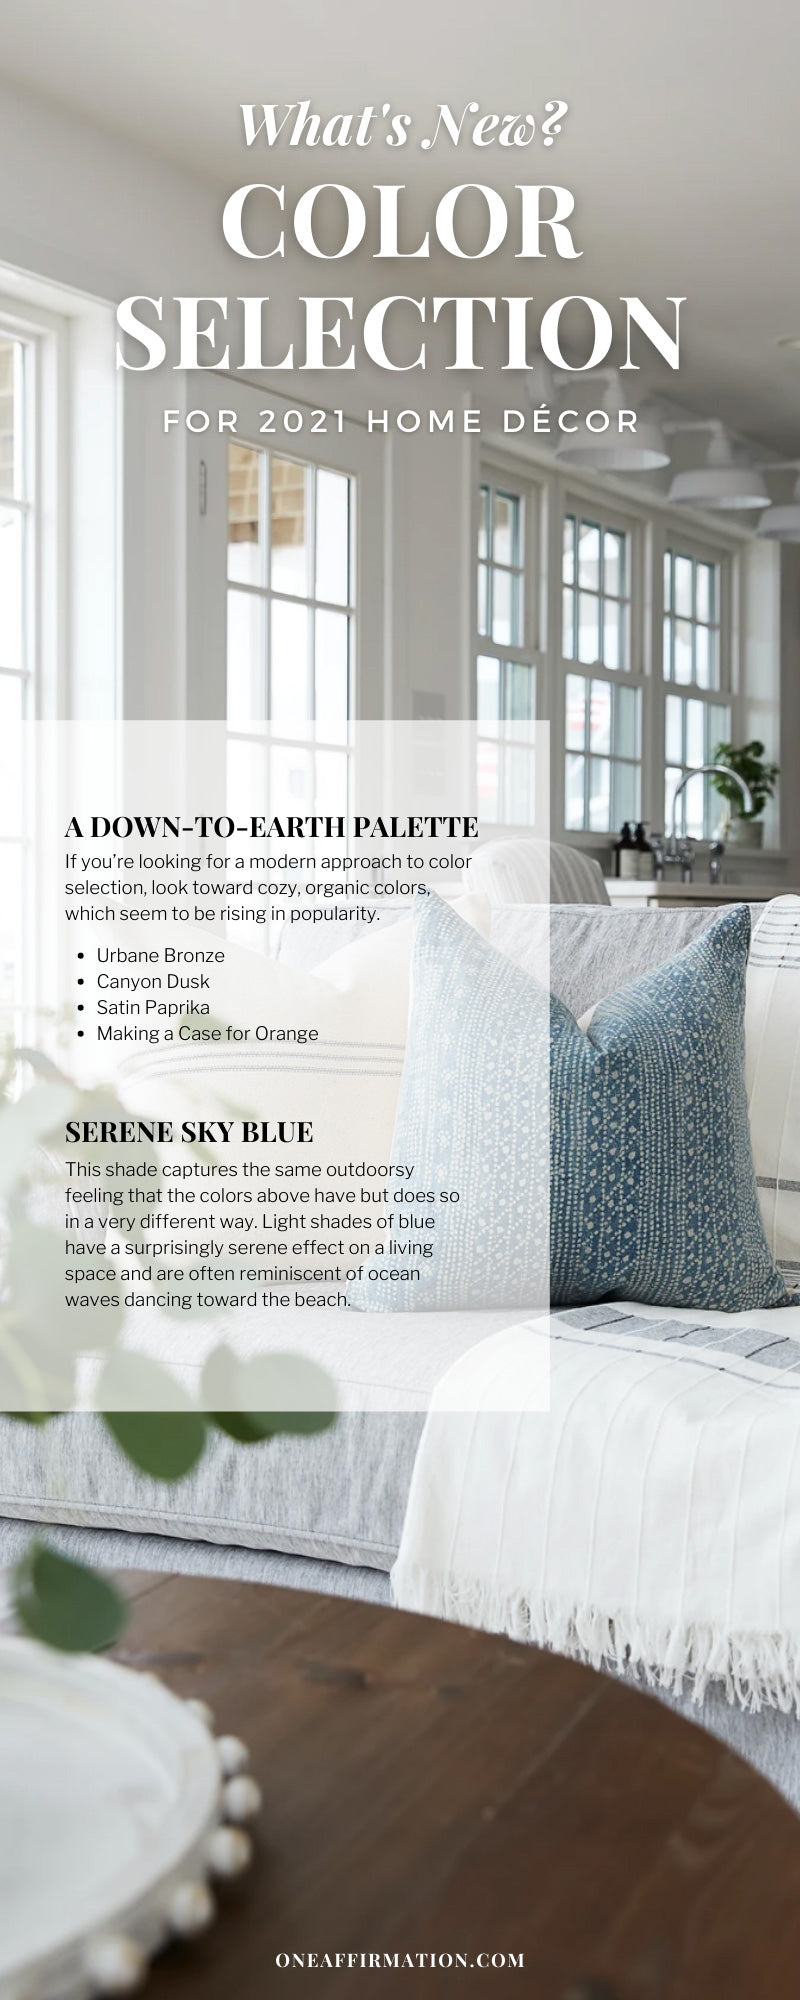 What's New? Color Selection for 2021 Home Décor